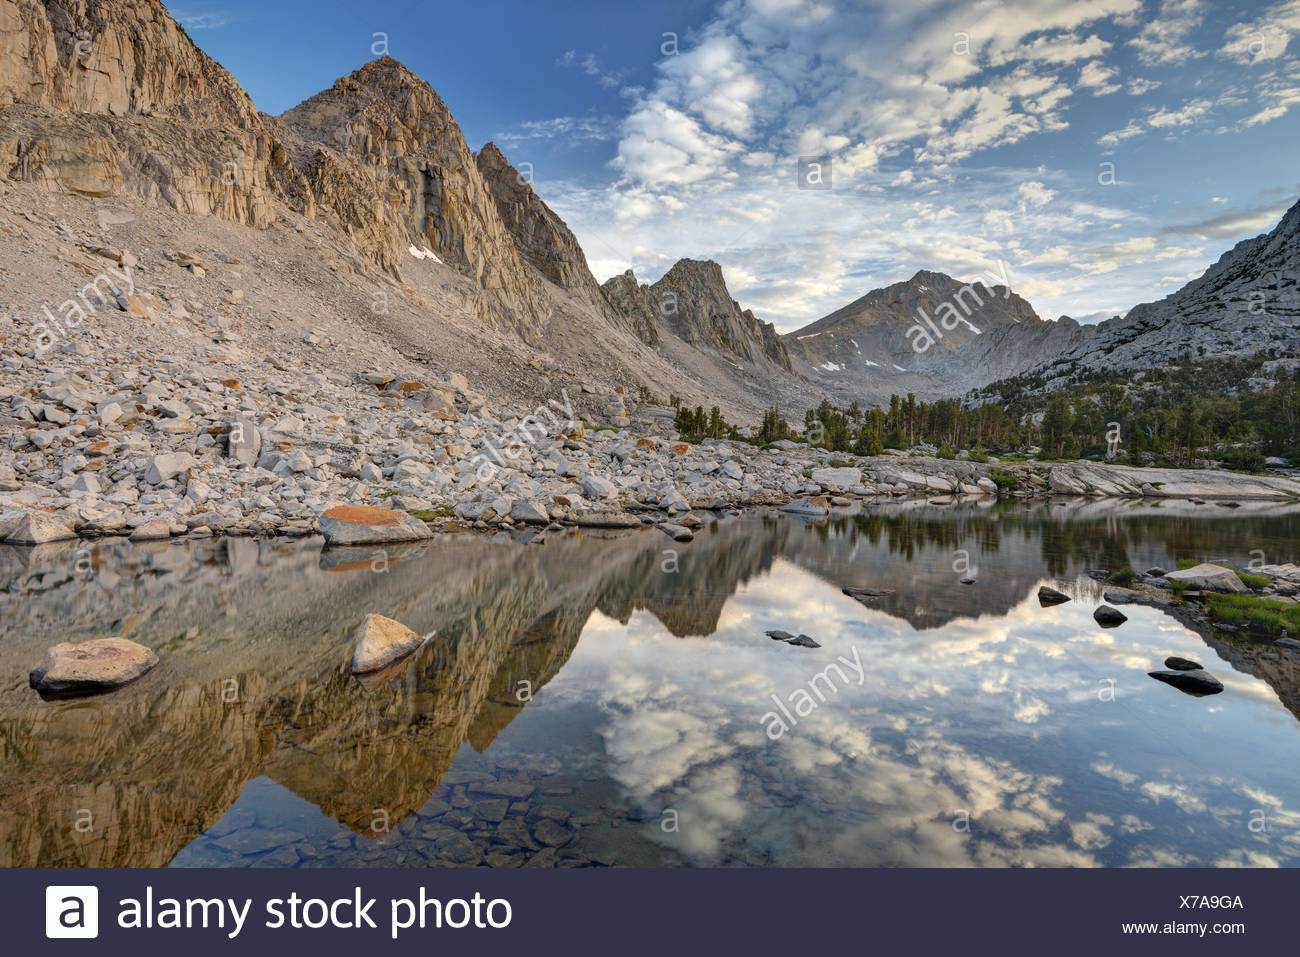 USA, California, Ansel Adams Wilderness Area, Inyo National Forest, Morning Reflections in Kearsarge Lakes - Stock Image